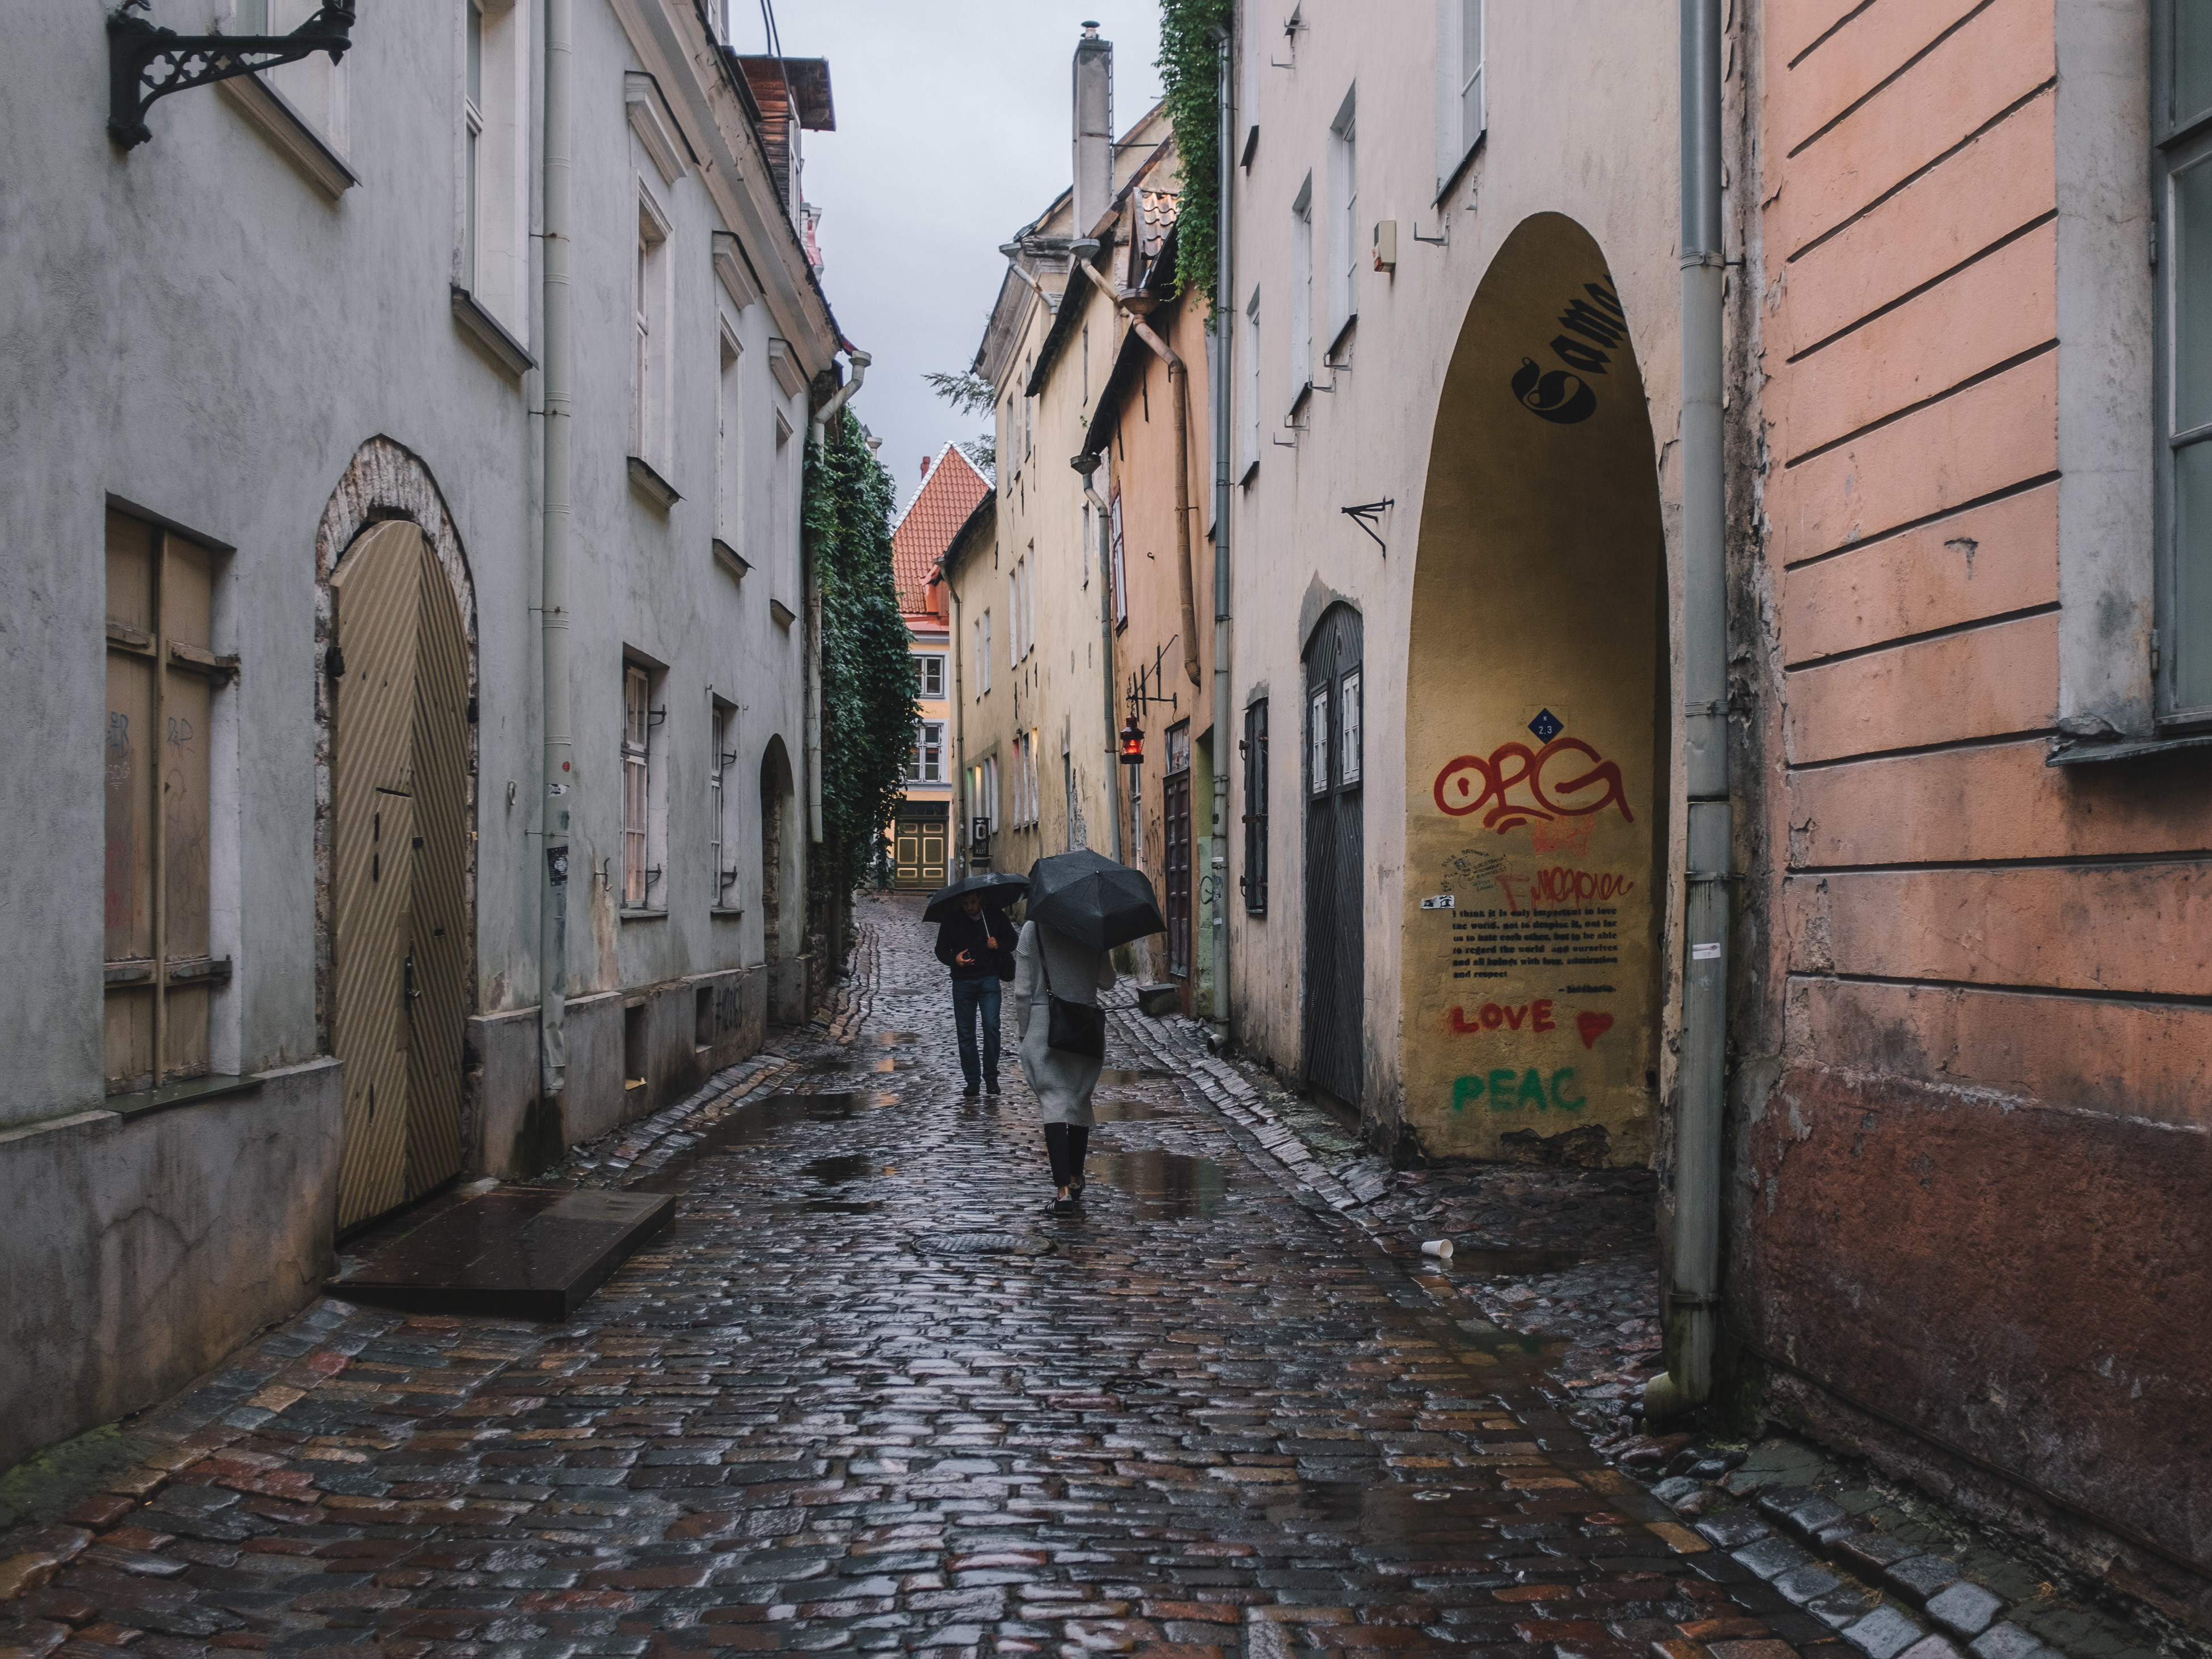 The Old town, Tallinn. The rain isn't bringing escape from the heat anymore. Instead, it makes you think about cardigans, gloves and curling up indoors, in front of fireplaces. The universally shared feeling that this year, summer almost didn't get started before it was already over.